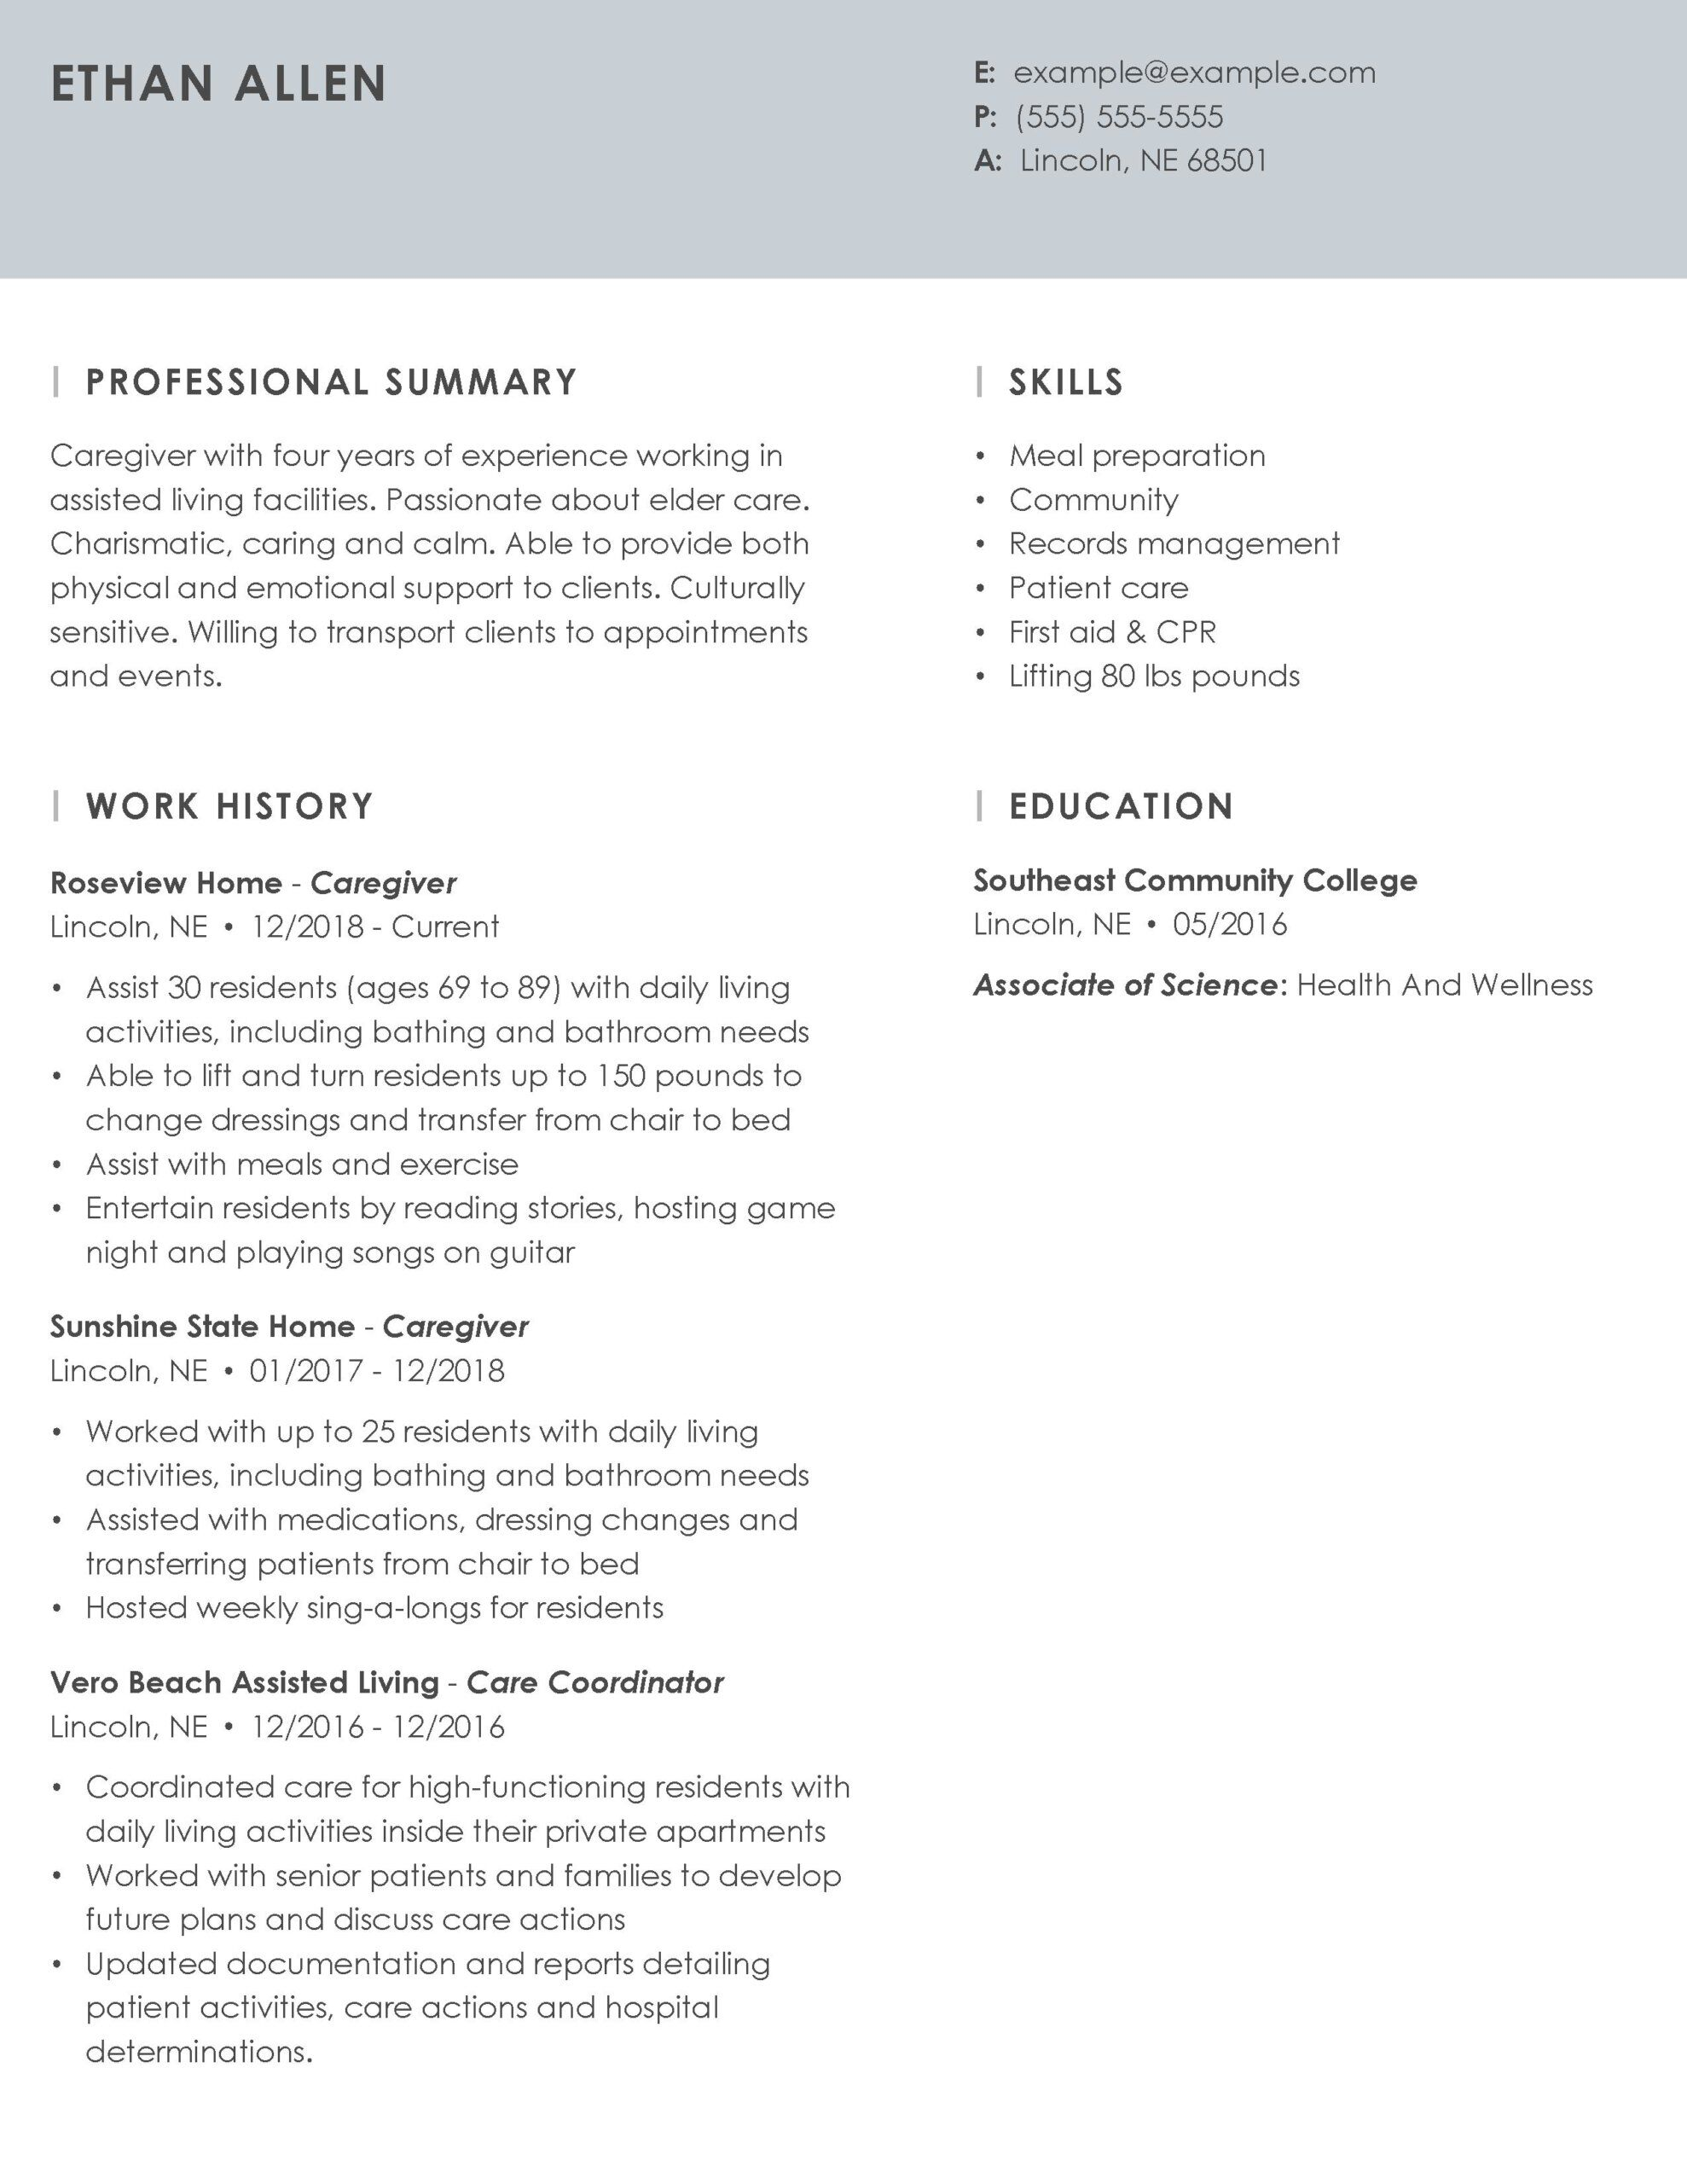 professional caregiver resume example tips myperfectresume skills and activities essence Resume Skills And Activities Resume Example